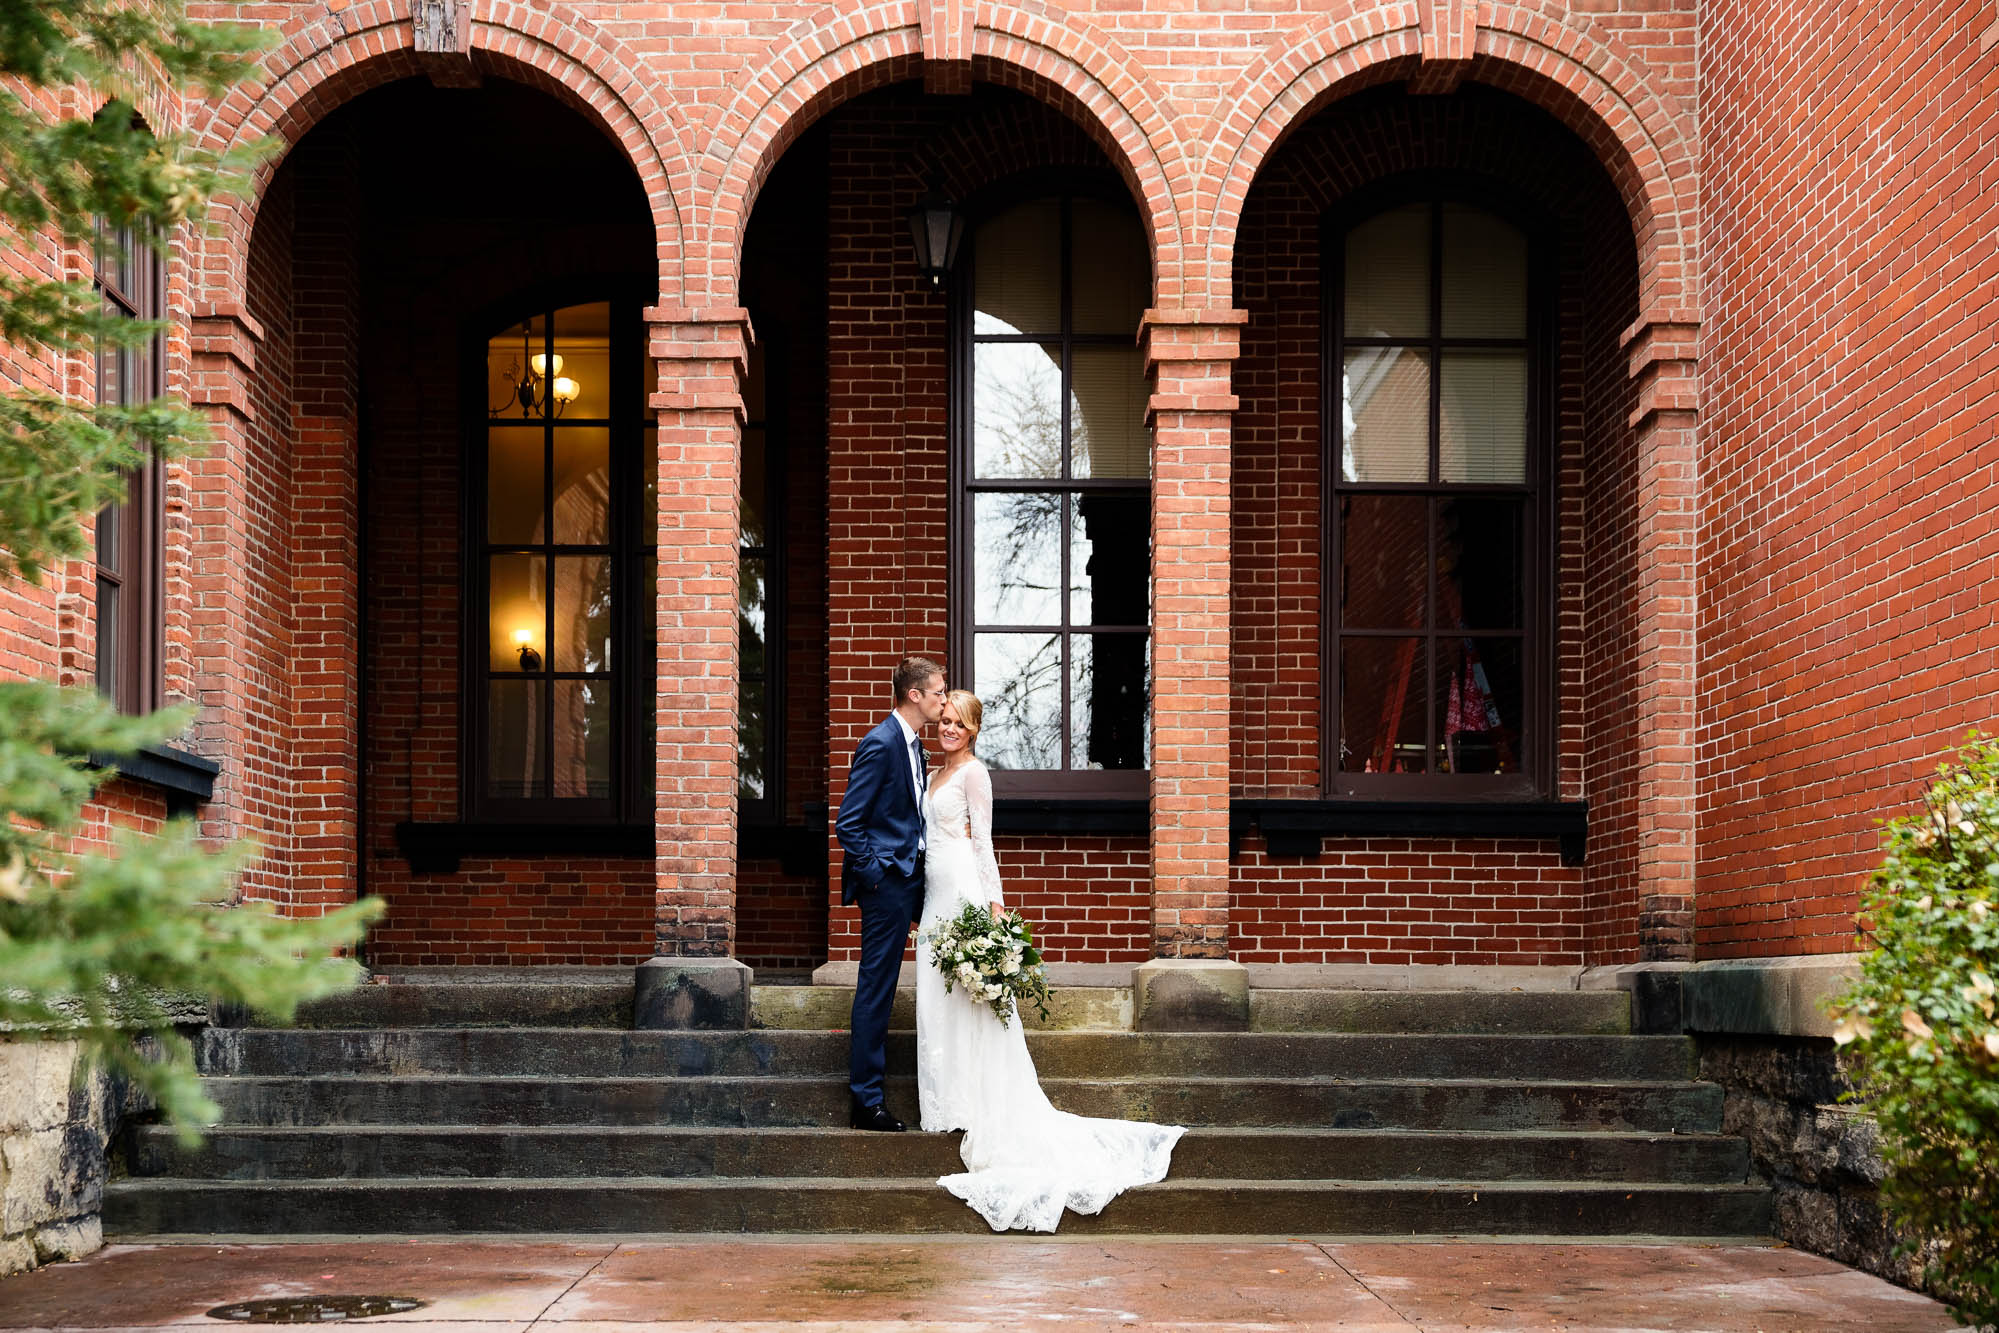 bride and groom standing with brick arches